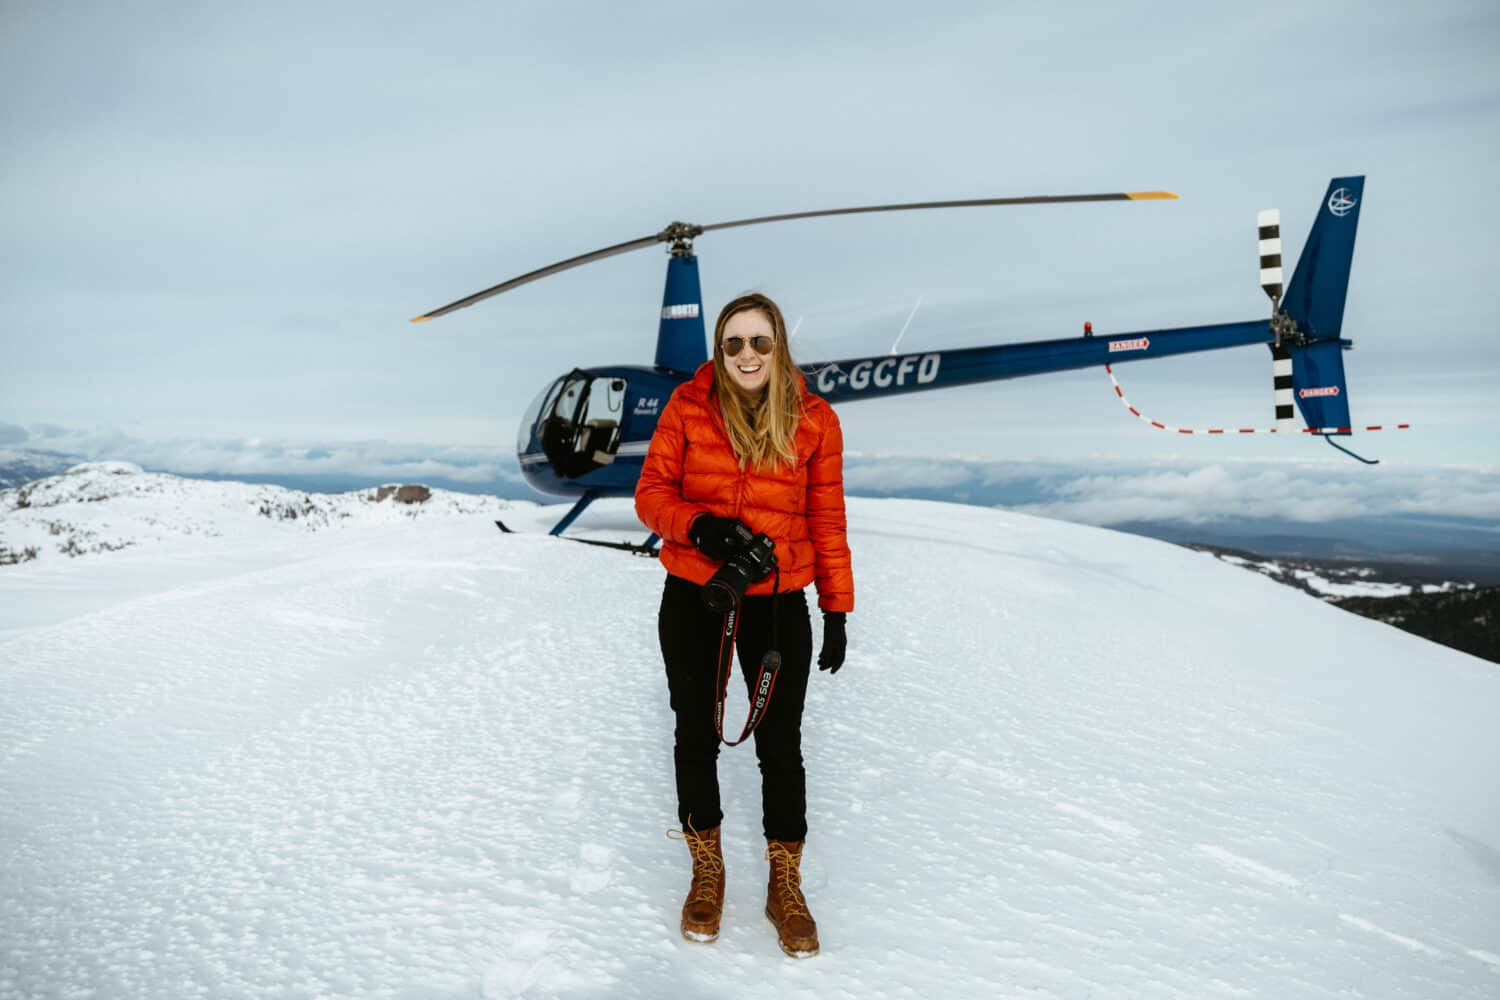 Emily with 49 North Helicopters - Campbell River, BC - Strathcona Provincial Park - TheMandagies.com